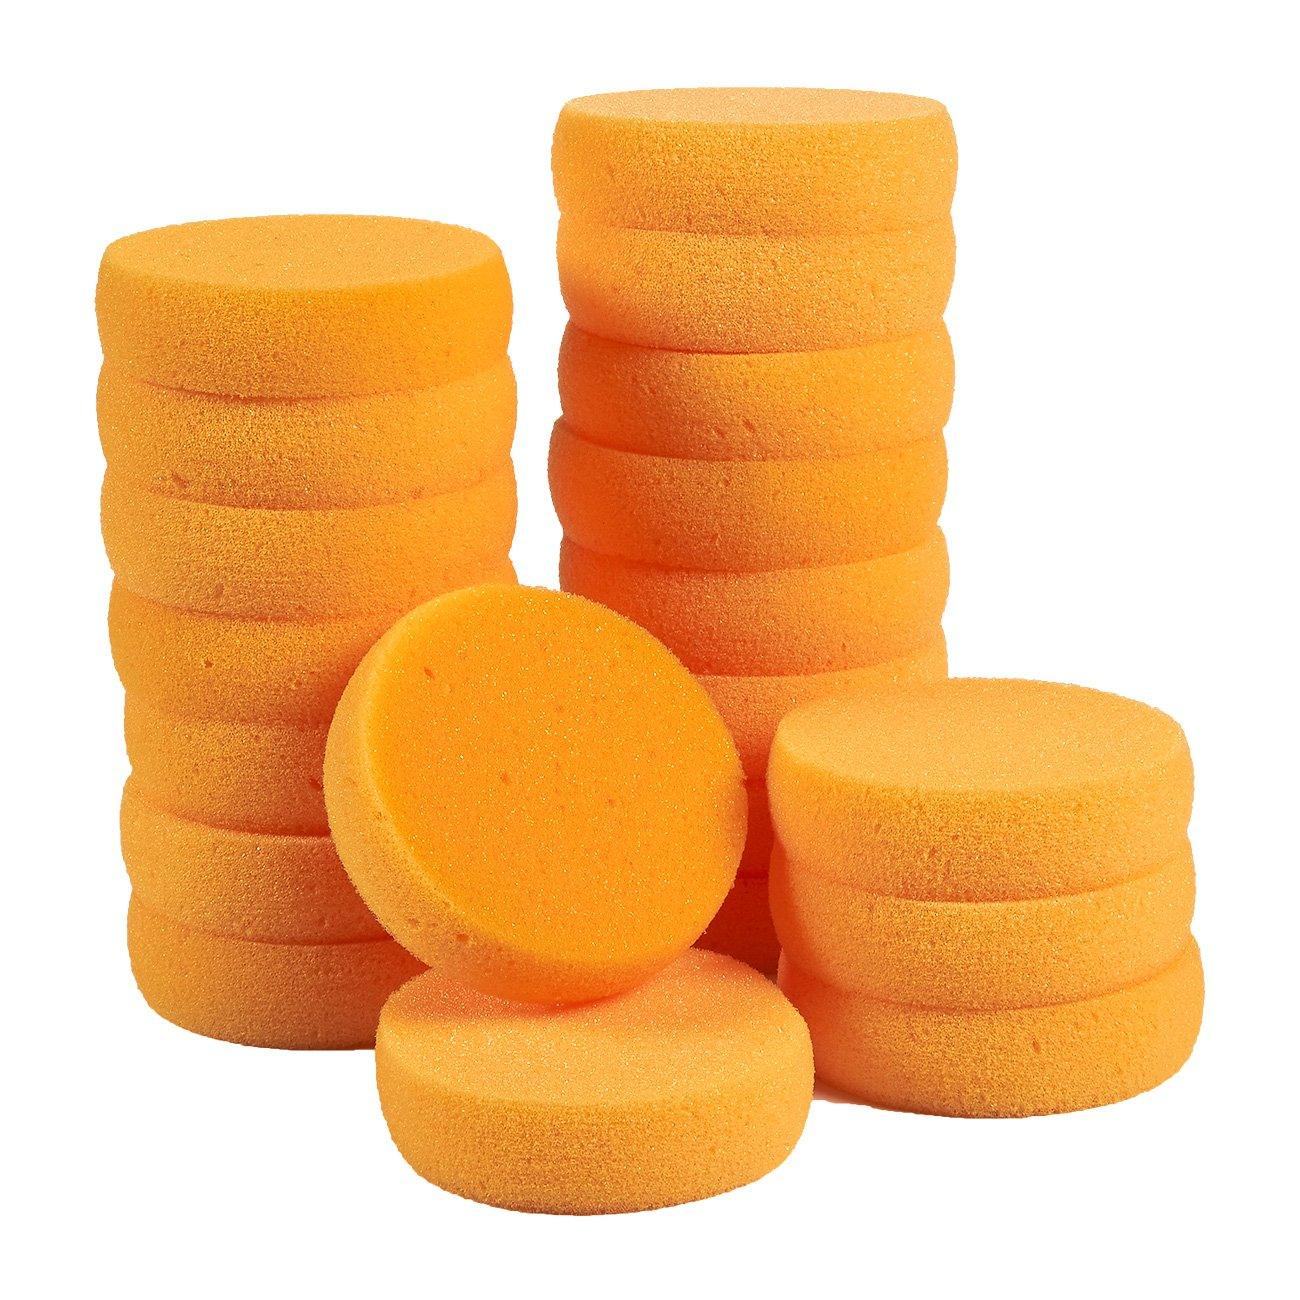 Pack of 20 Synthetic Sponges - Round Craft Sponges - Ideal for Painting, Face Painting, Crafts, Pottery, Clay, Household Use, 3.5 x 1 x 3.5 inches, Orange